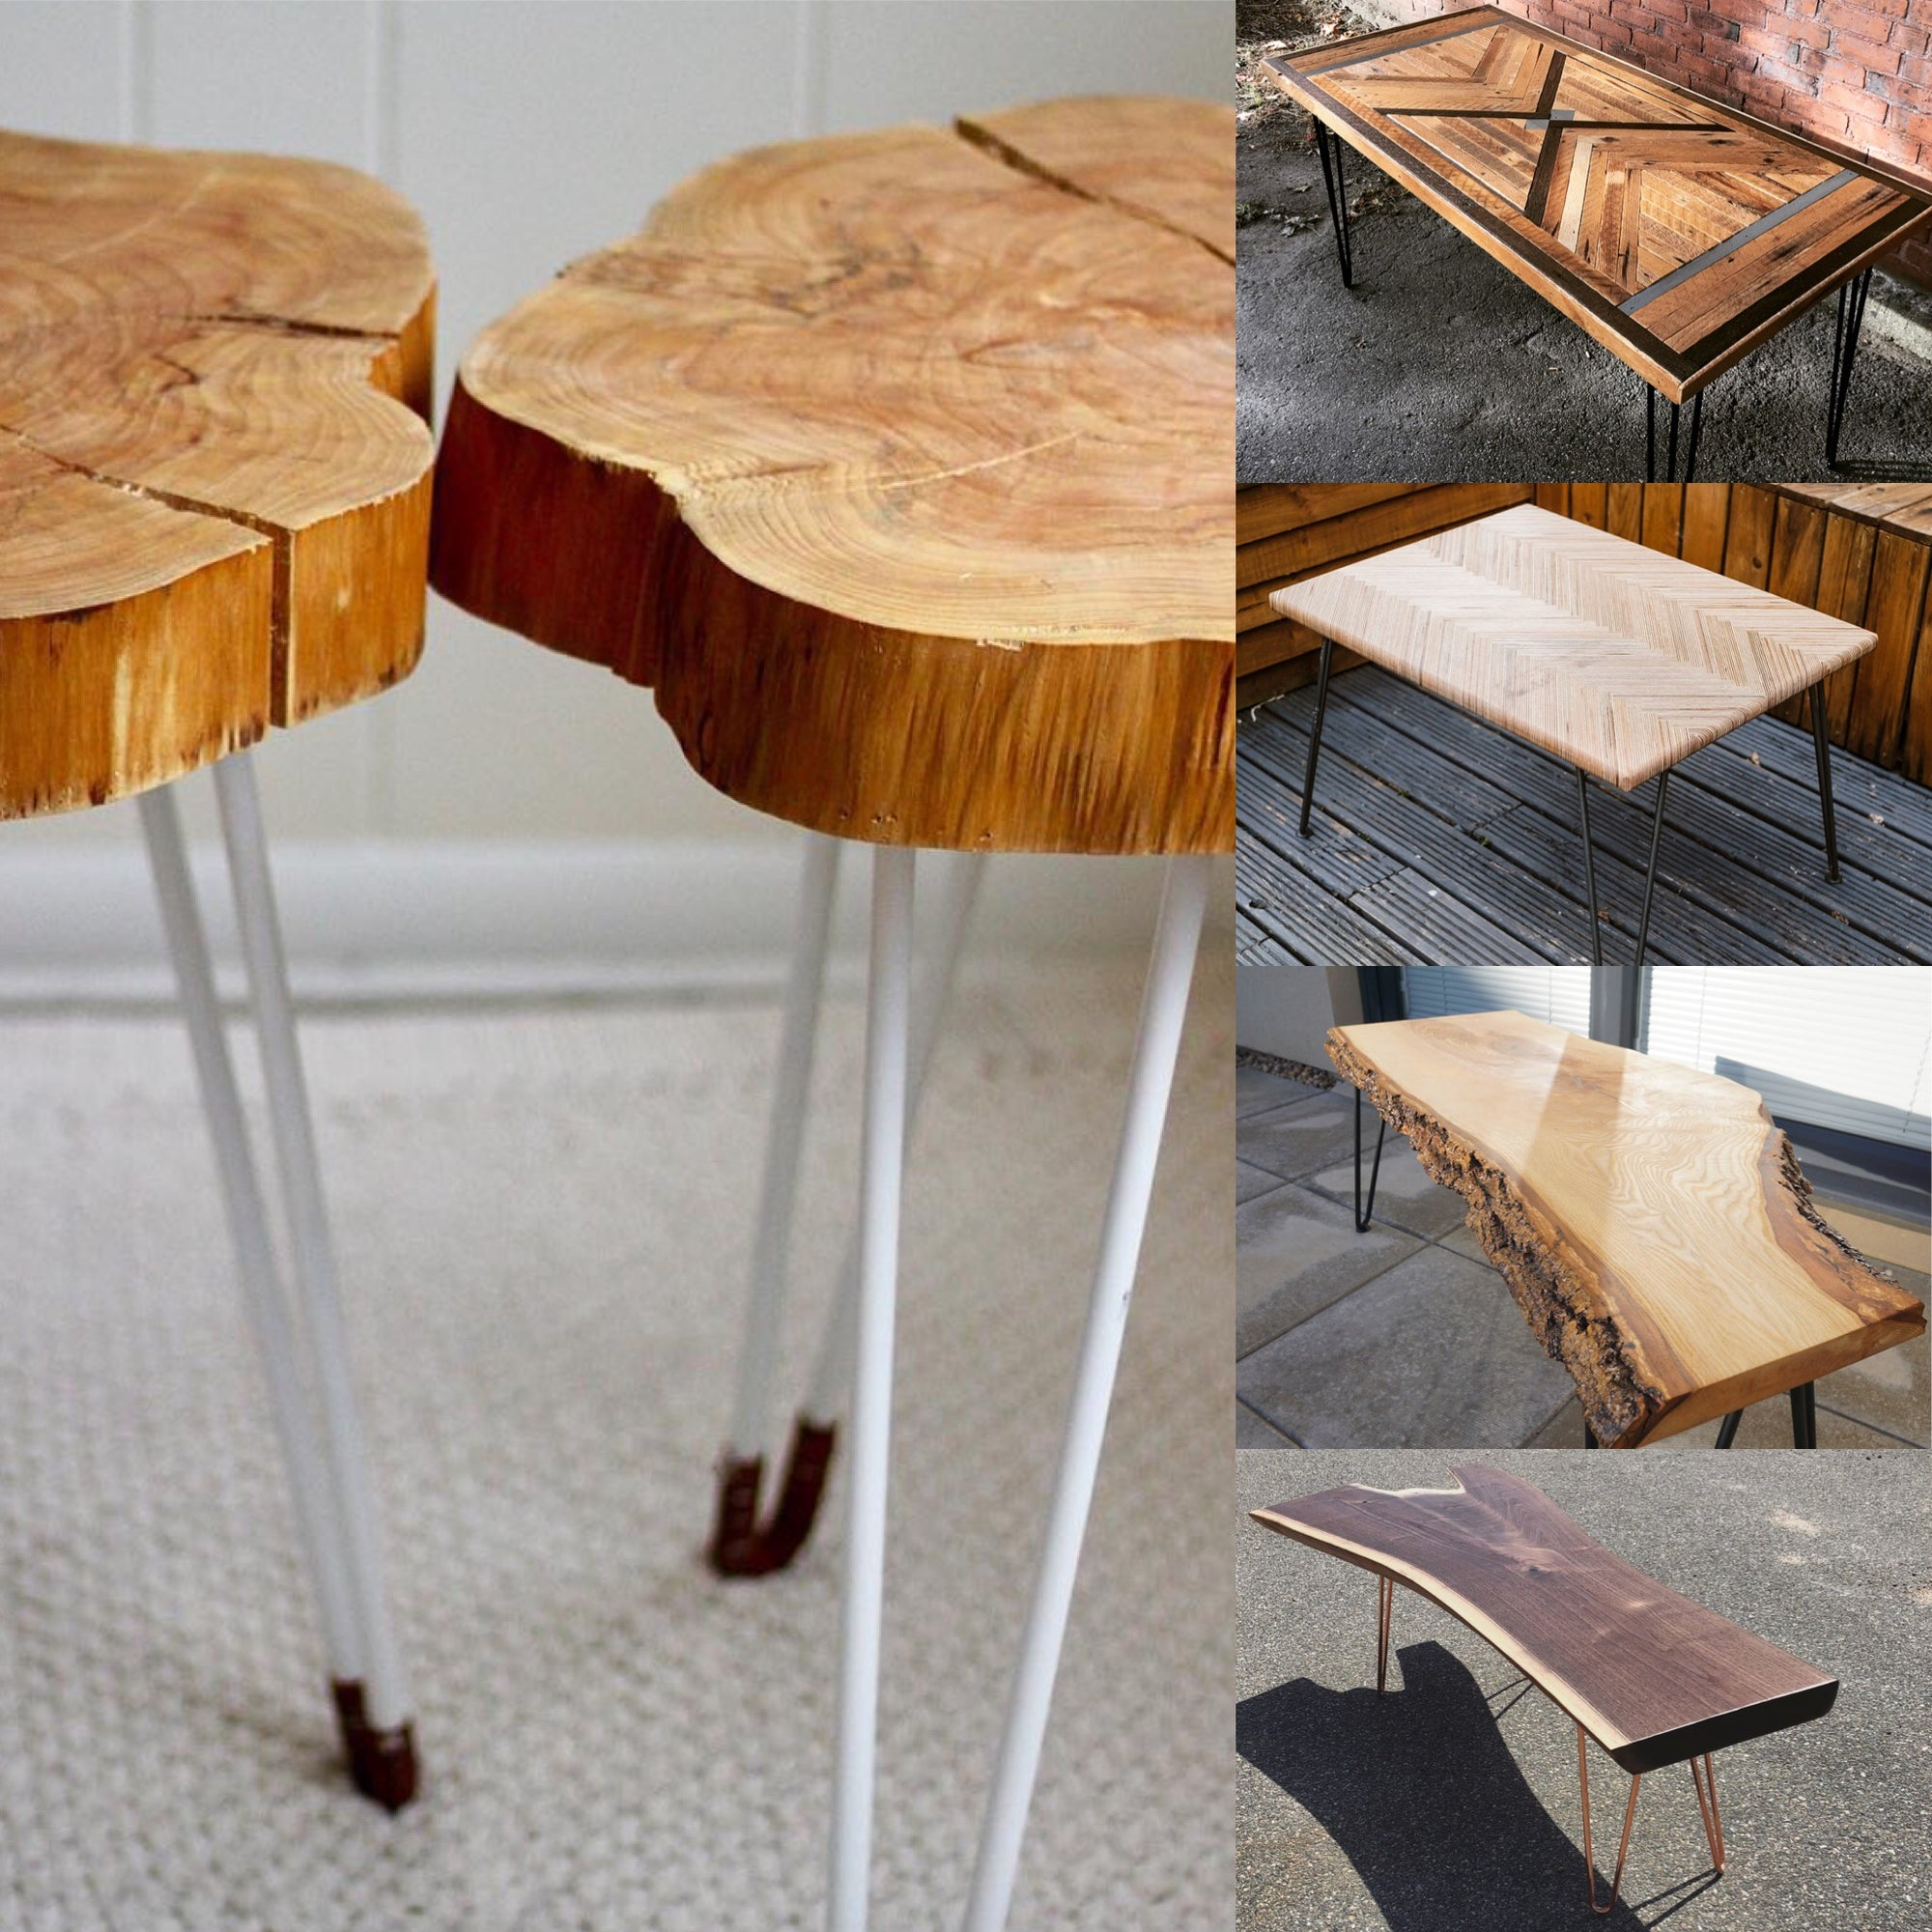 5 inspiring wooden tables with hairpin legs